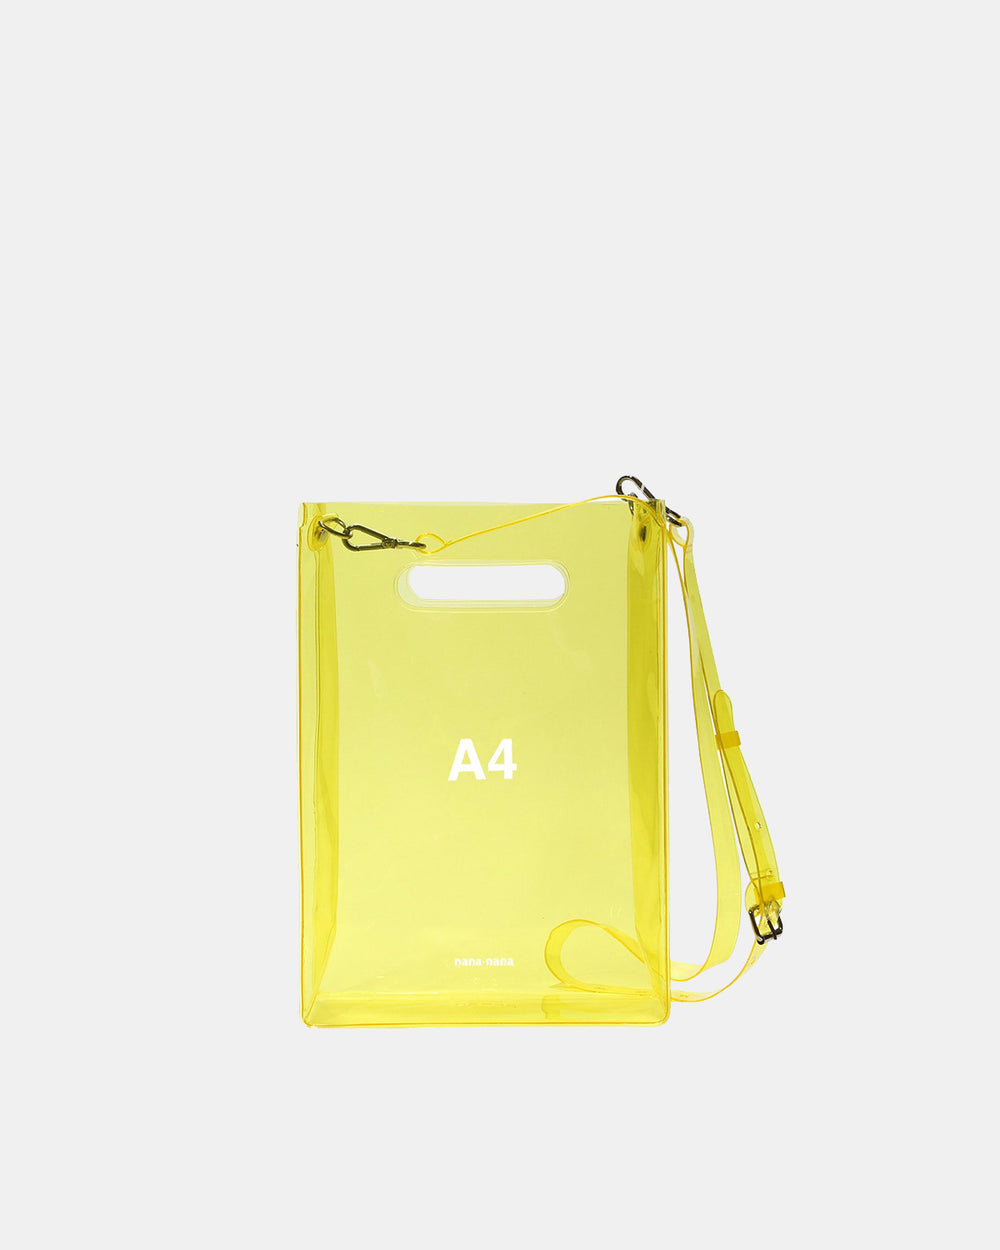 nana-nana - A4 PVC Bag (Yellow)